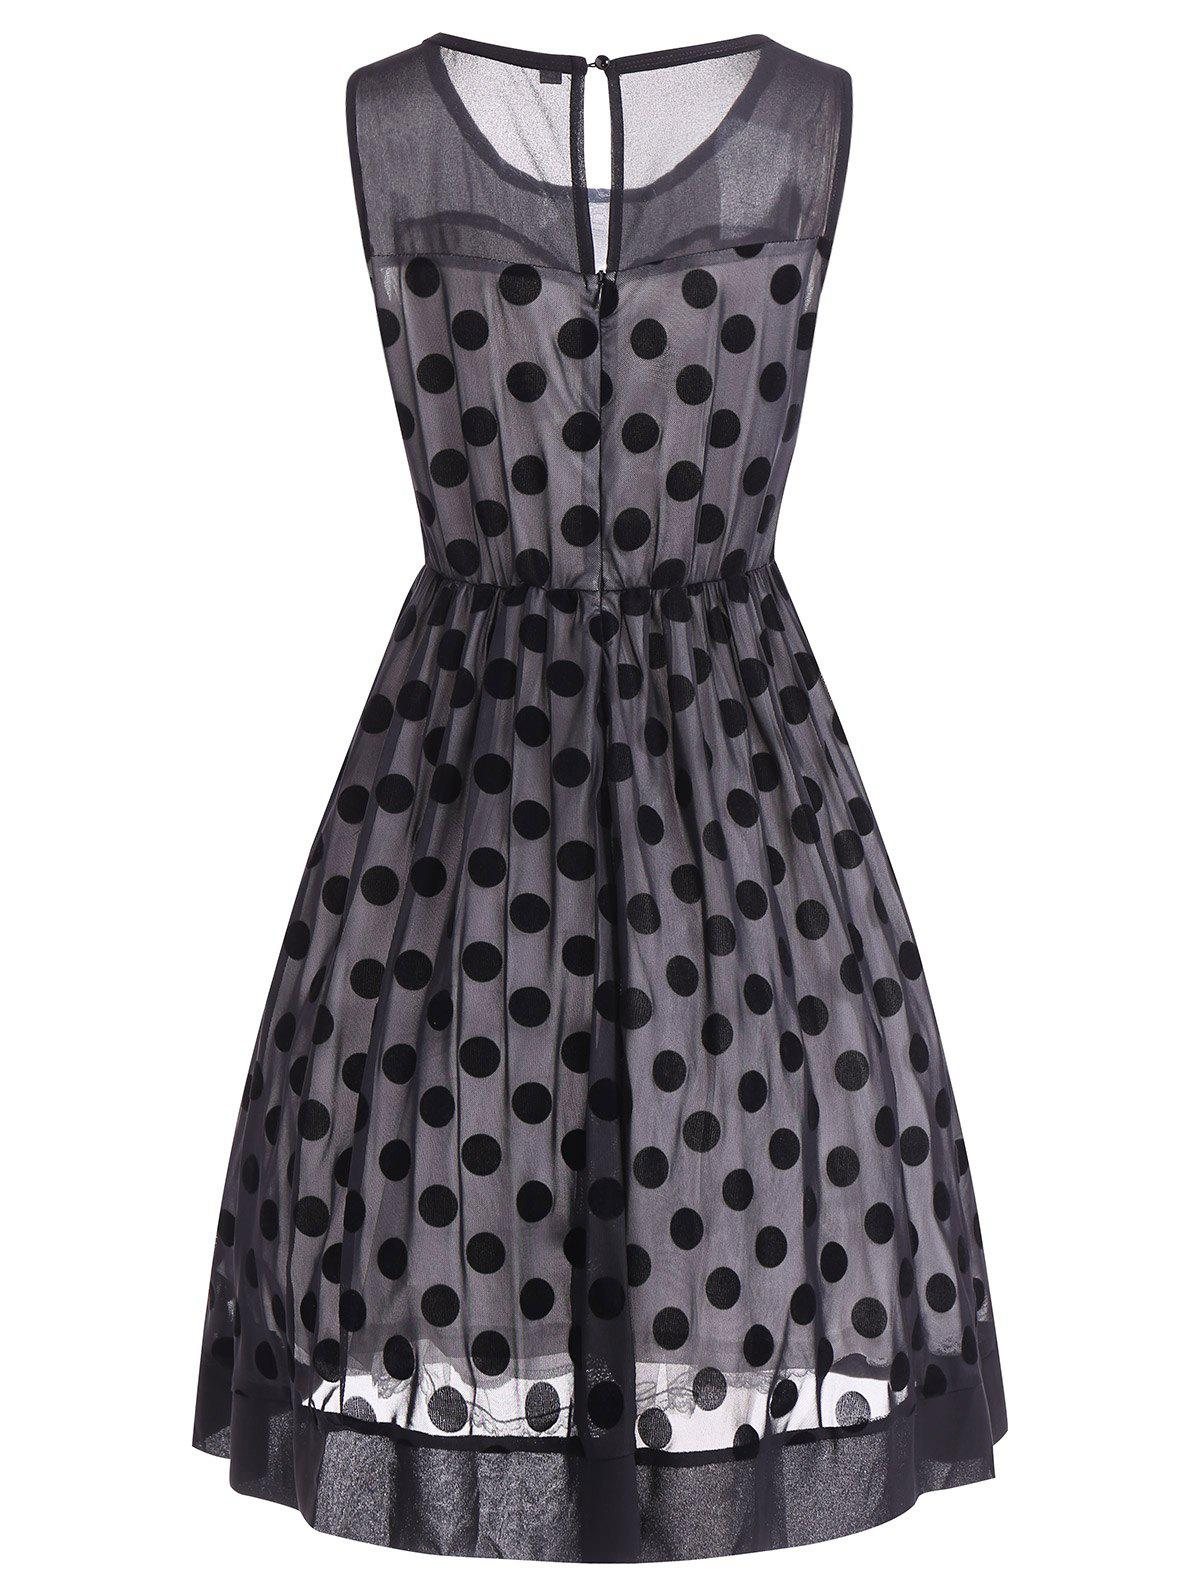 Summer Retro Polka Dot Mesh Yarn Insert Dress - BLACK L